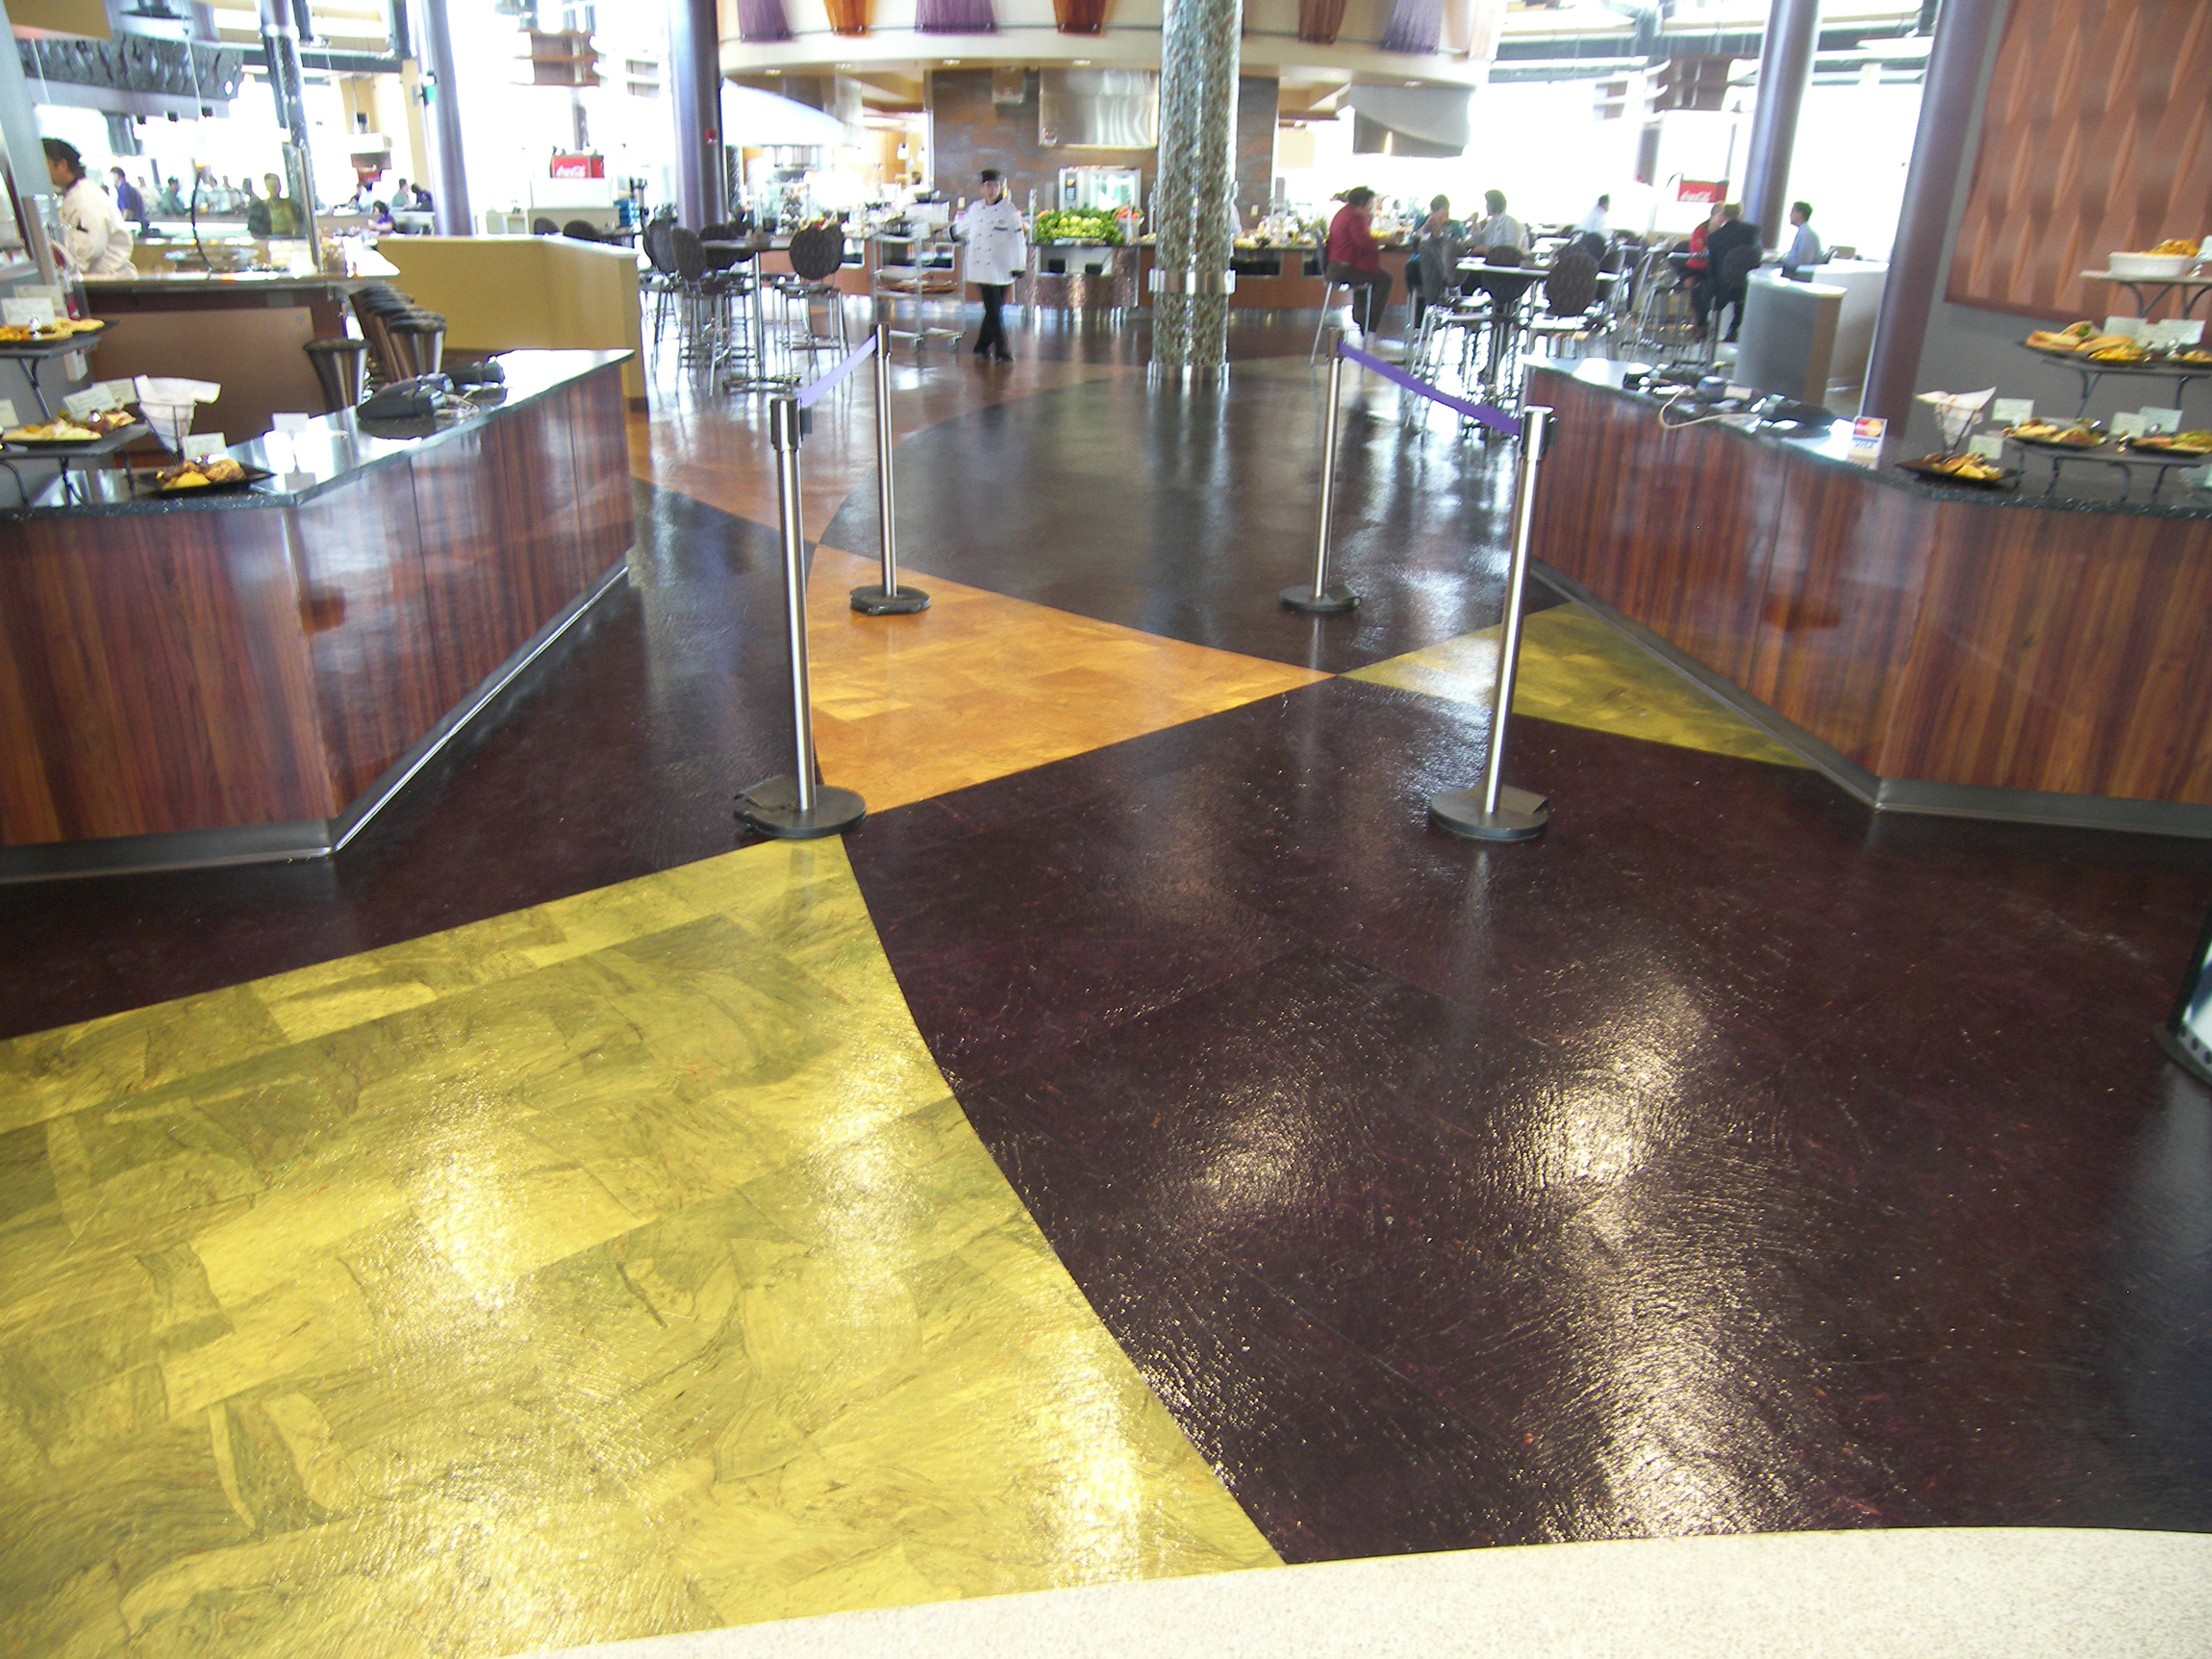 JMU CISAT Library & Dining Hall Interior